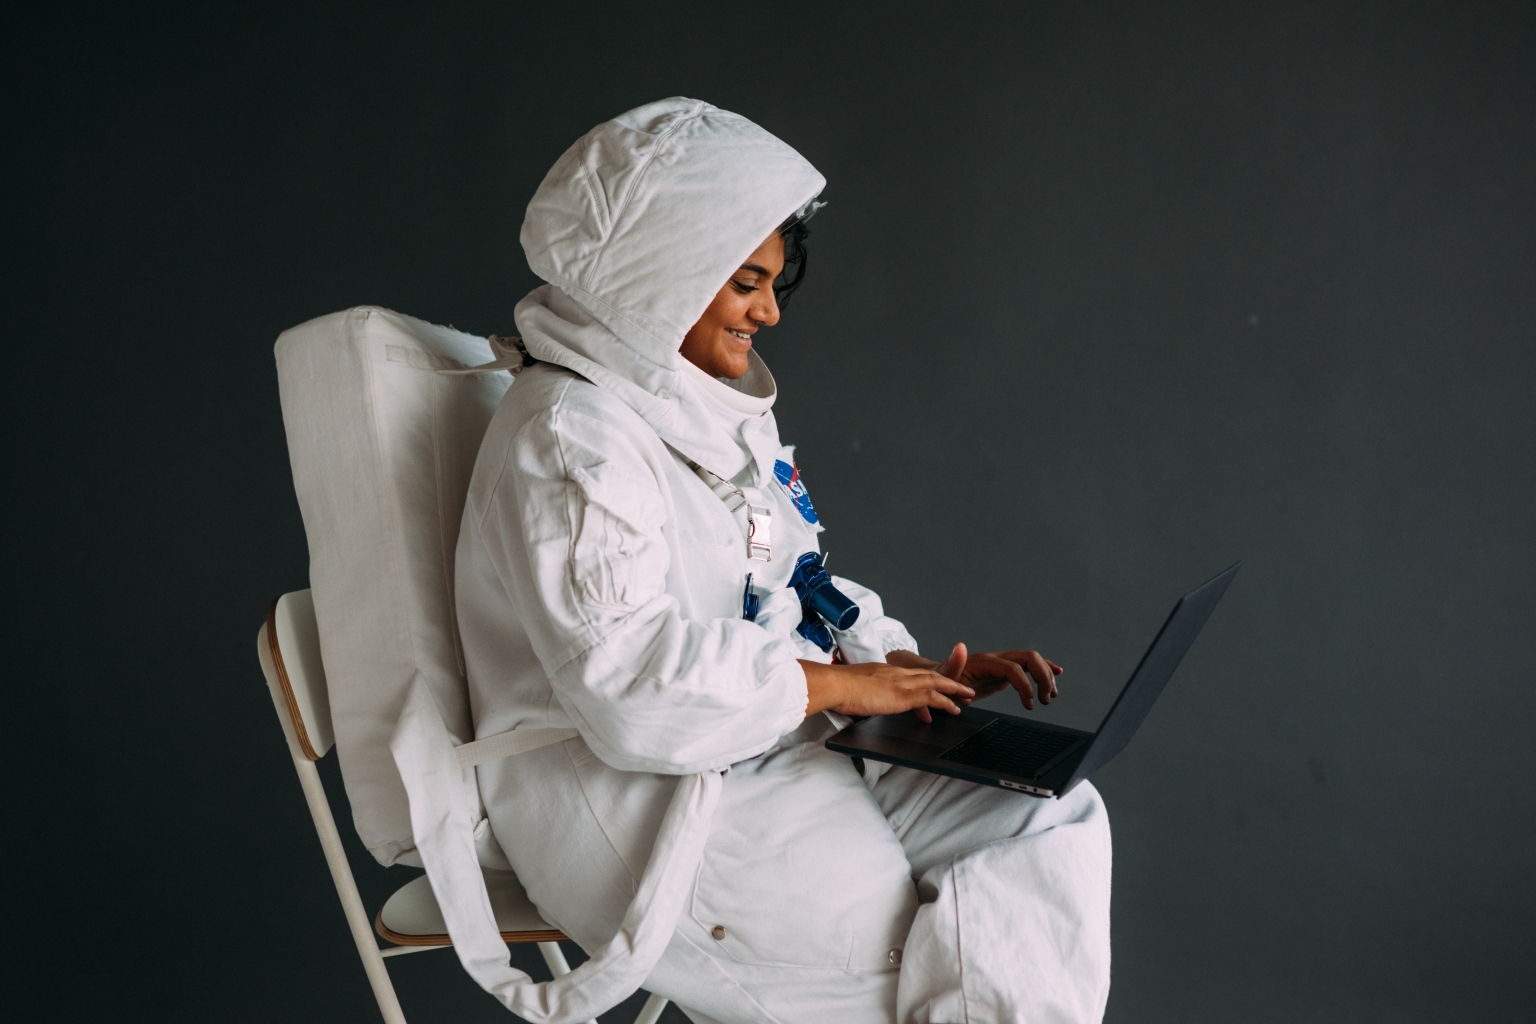 astronaut playing on laptop